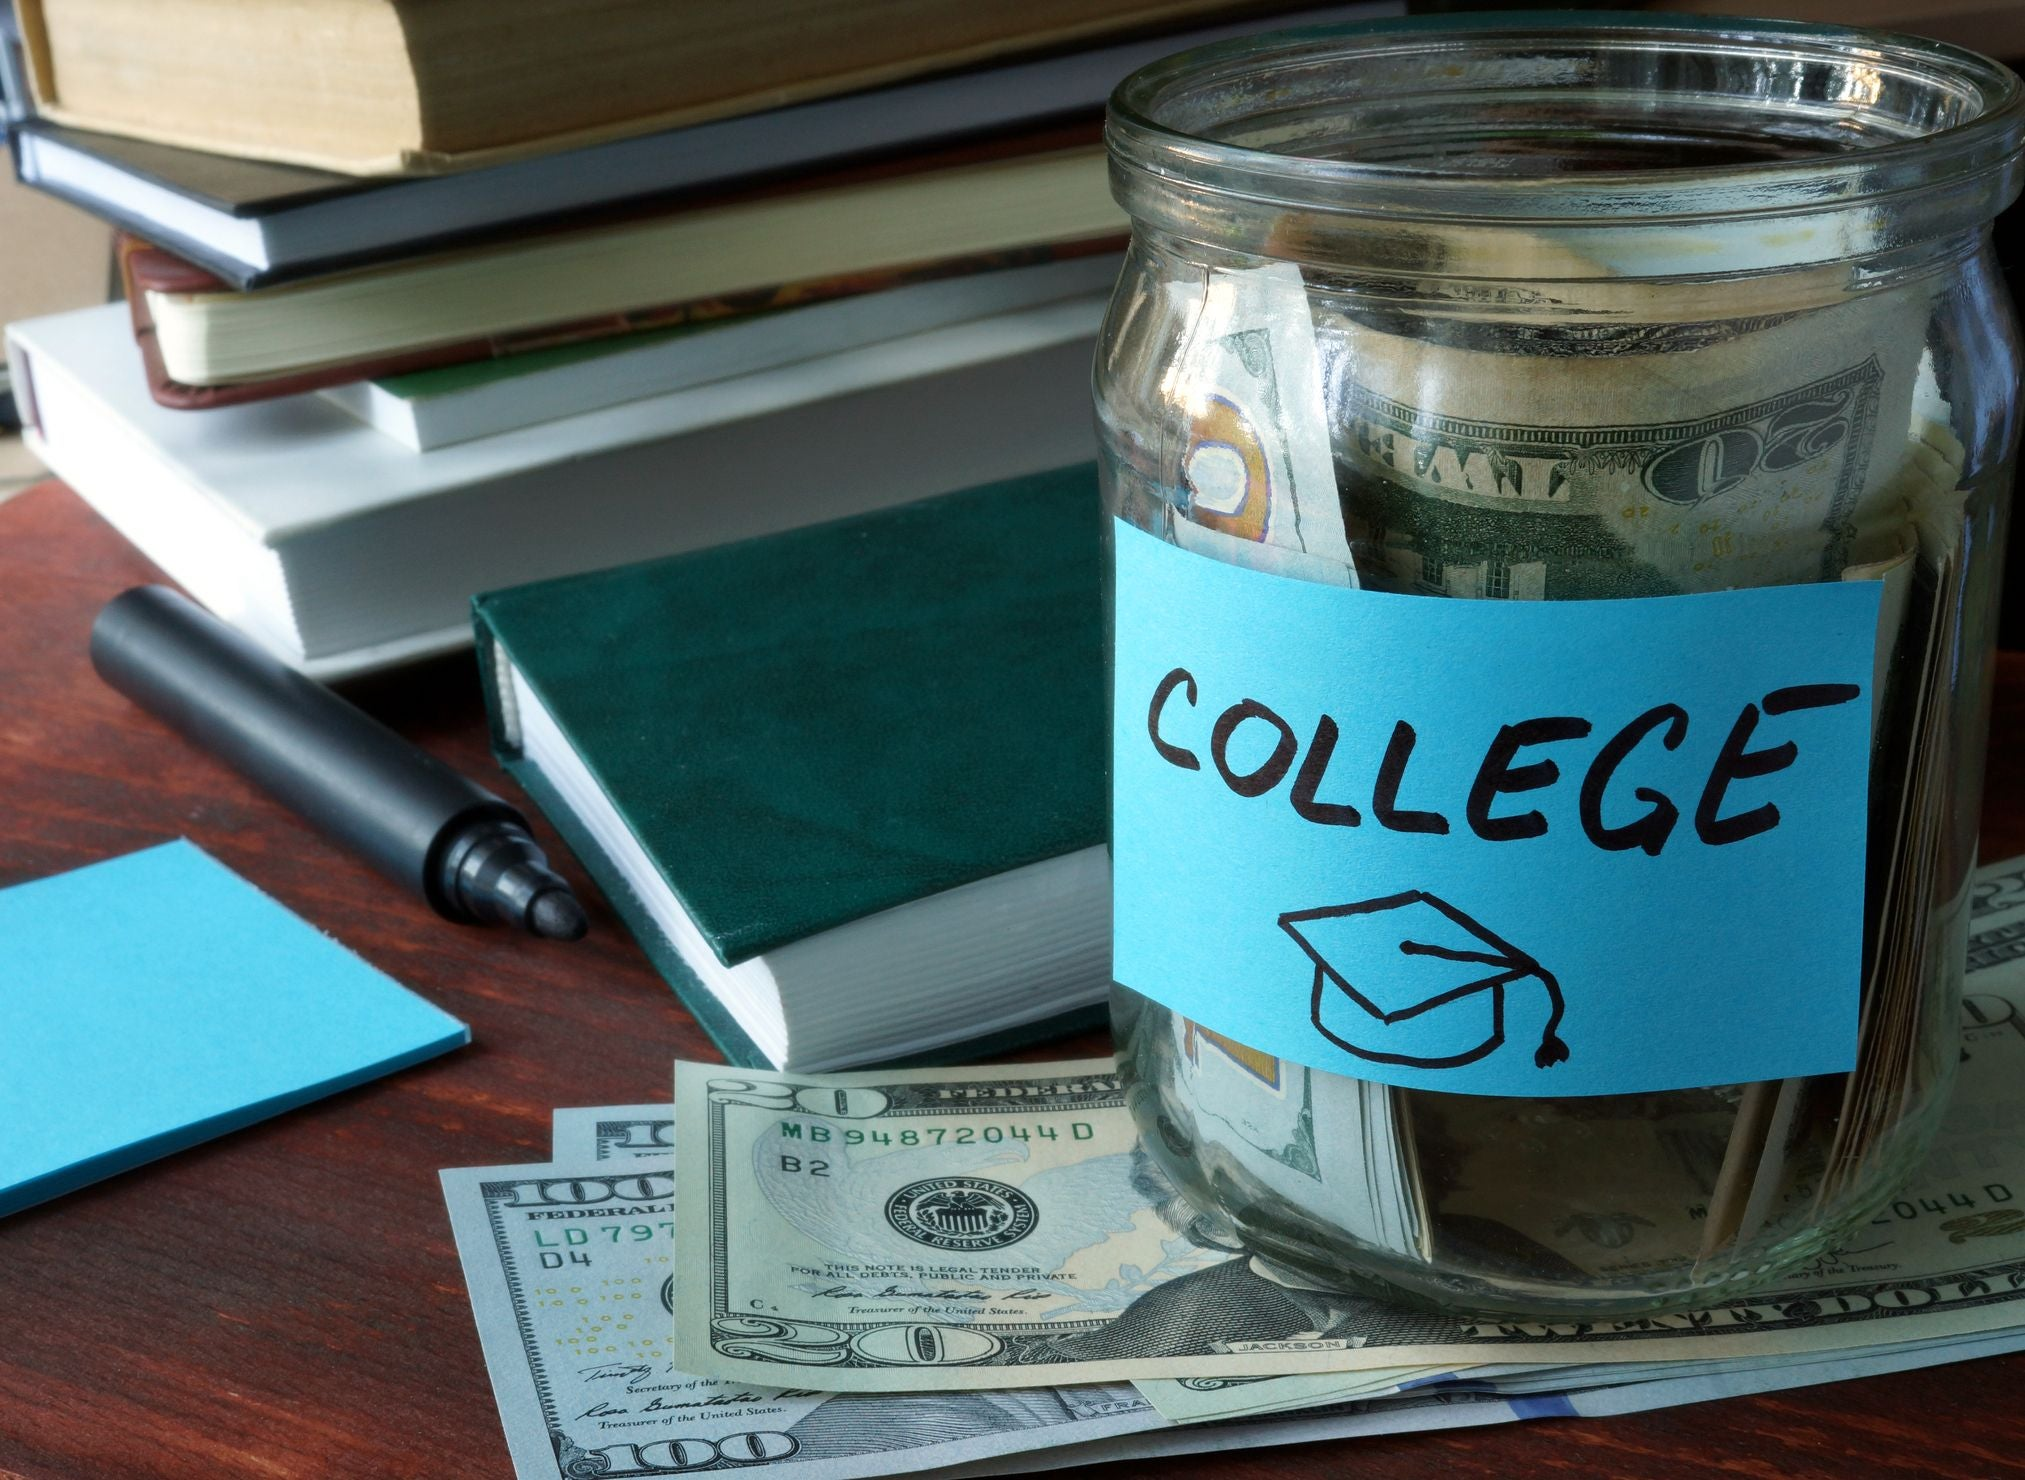 Can Recent IPO Coursera Disrupt Higher Education?